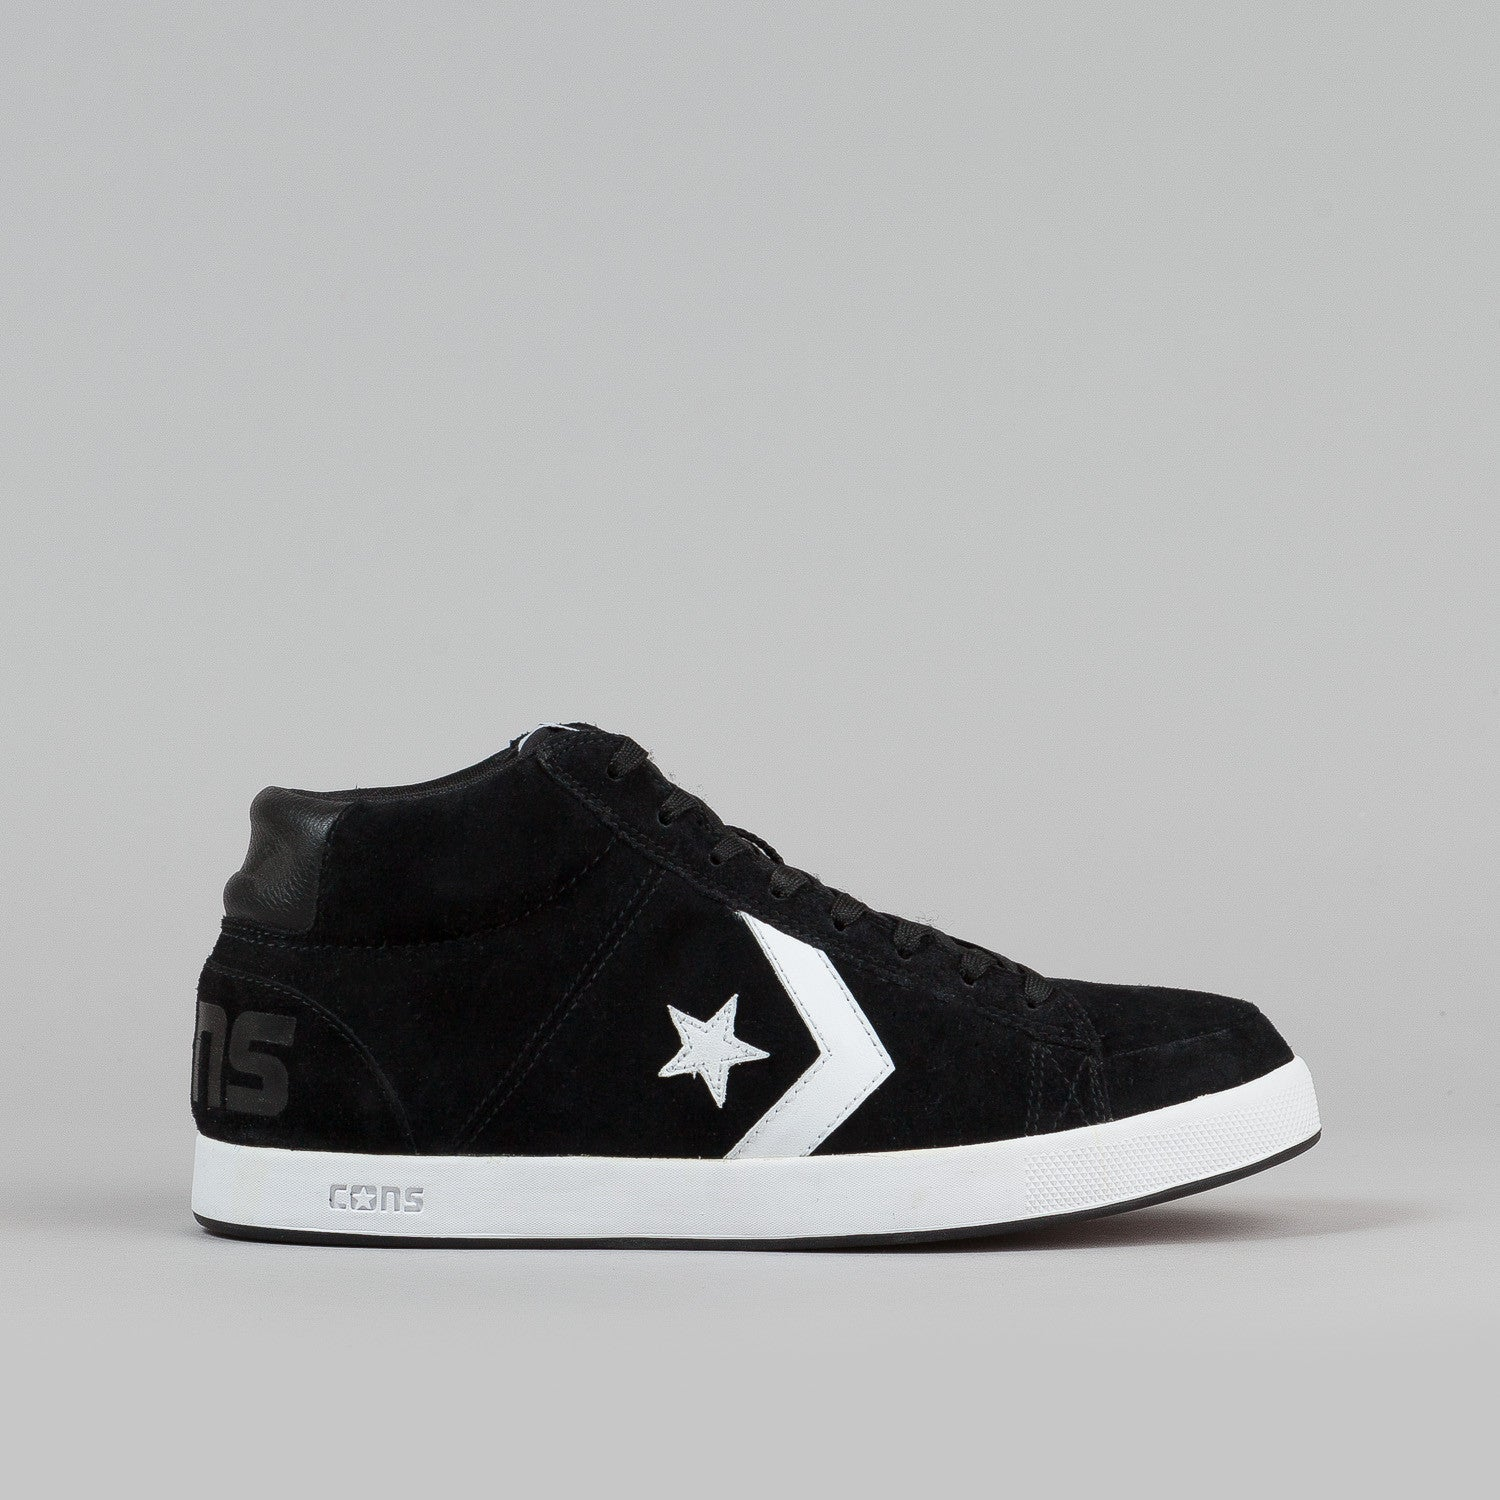 Converse Revere Mid Shoes